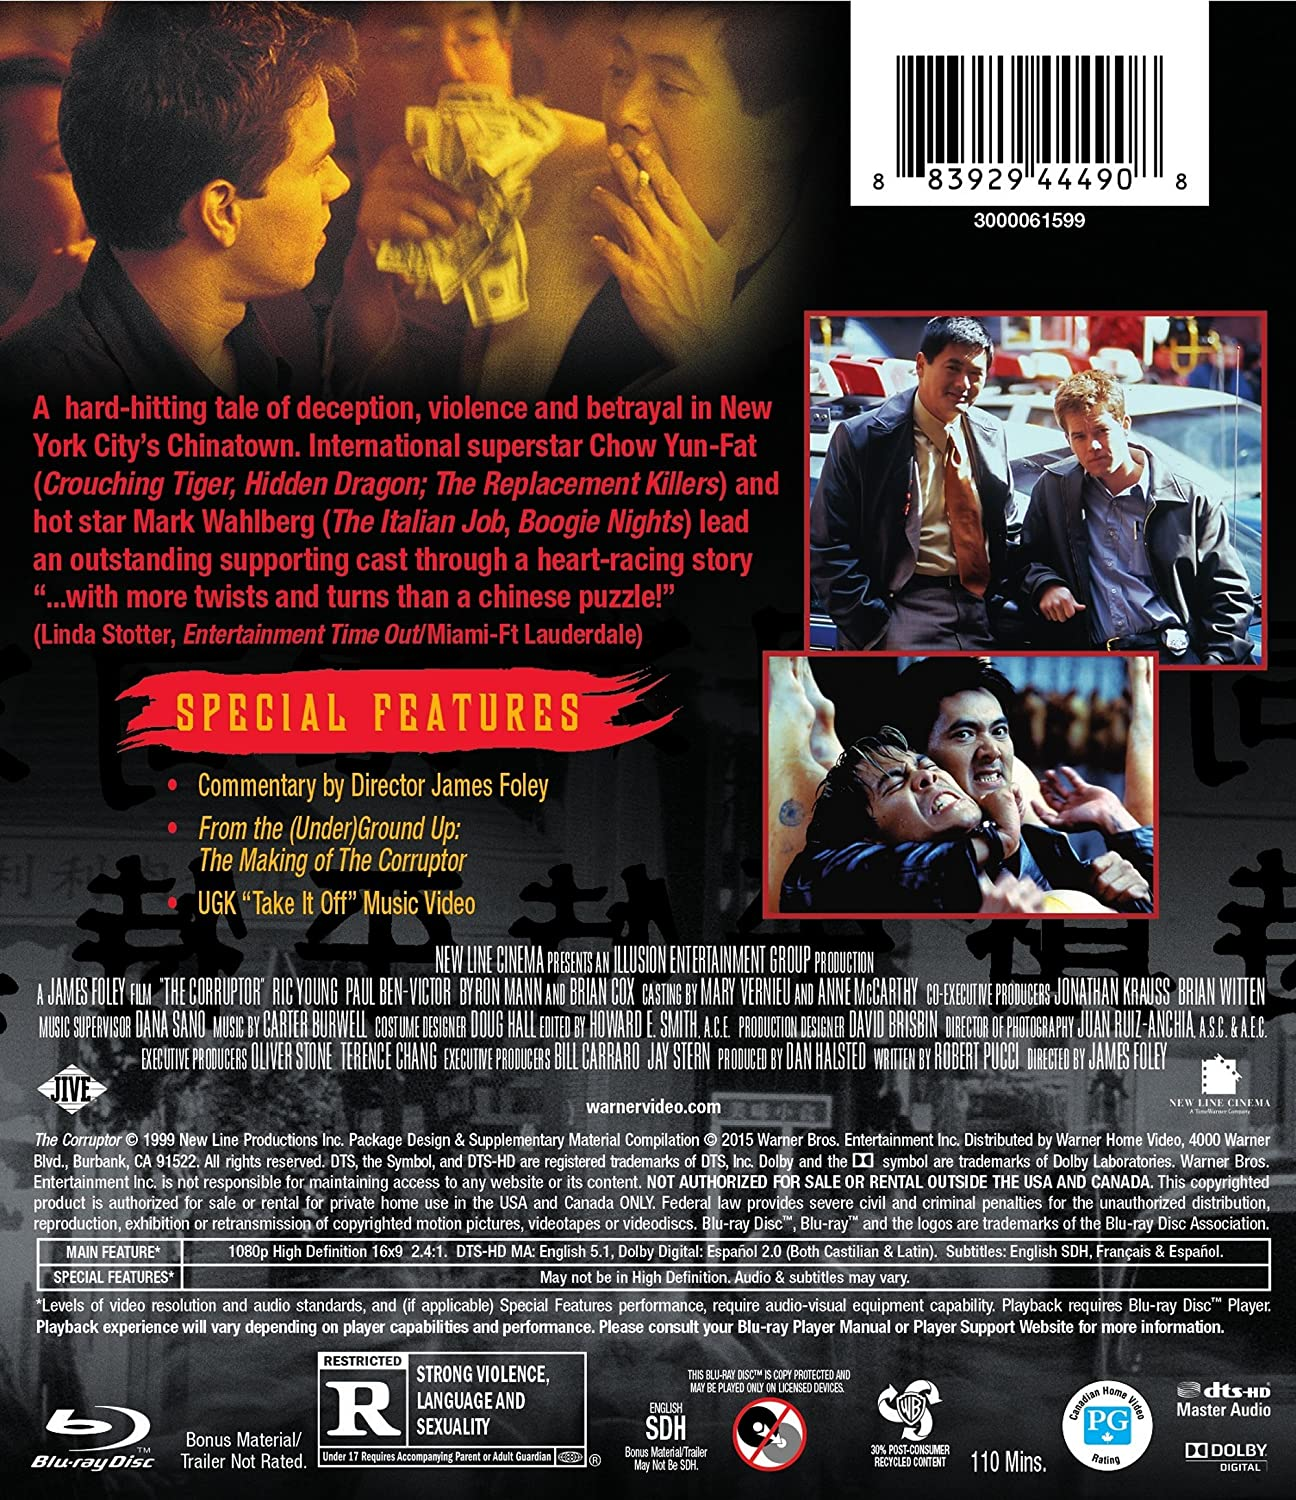 com corruptor the bd blu ray chow yun fat mark com corruptor the bd blu ray chow yun fat mark wahlberg ric young paul ben victor james foley oliver stone terence chang bill carraro